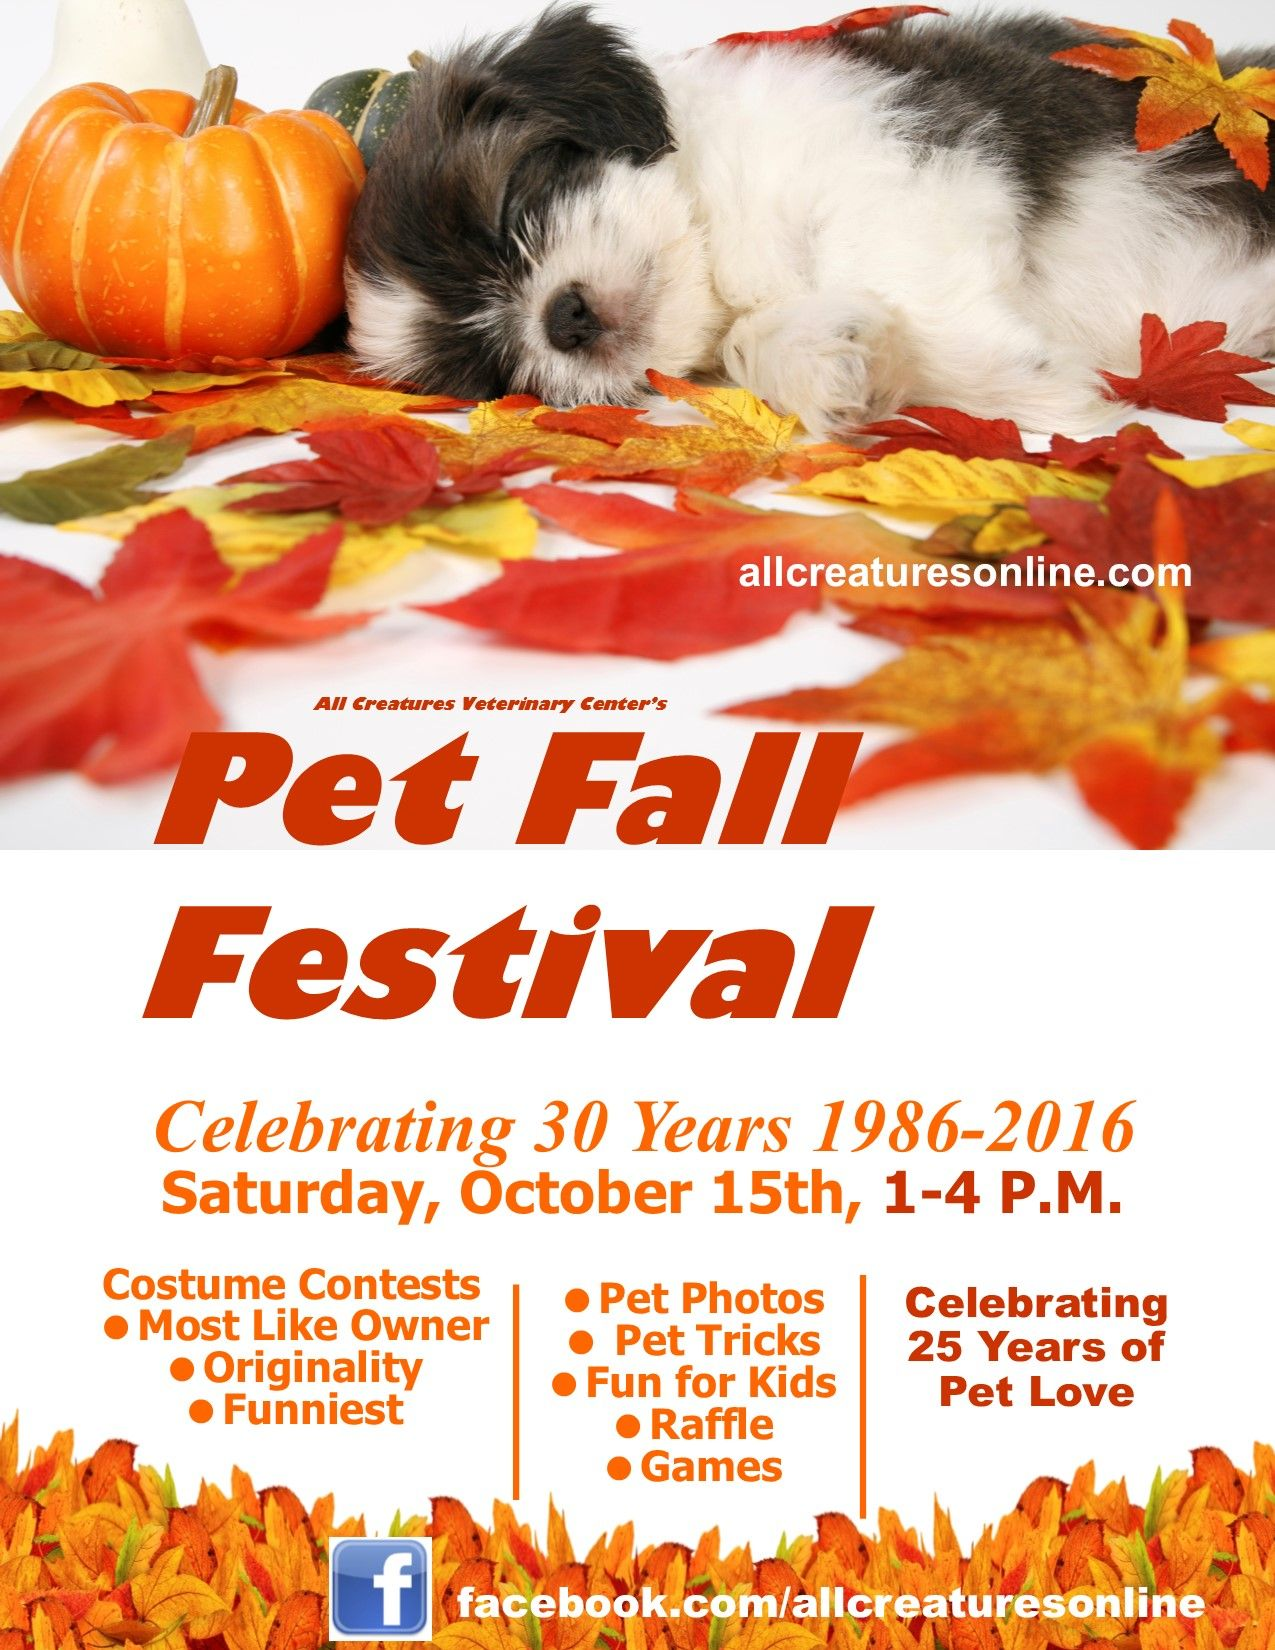 All Creatures Veterinary Center's pet fall festival